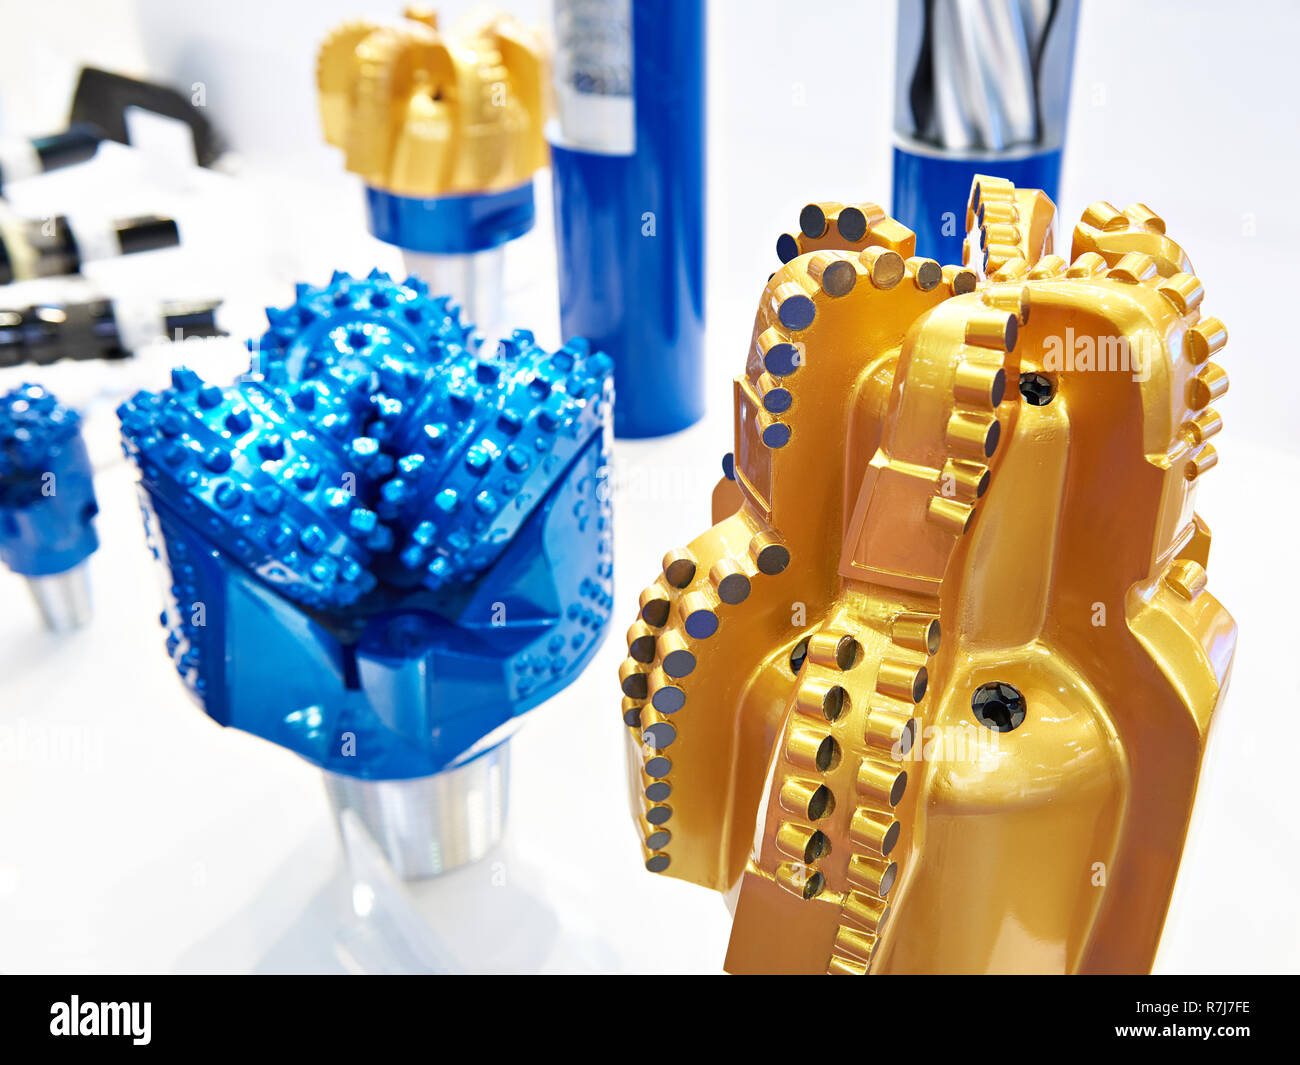 Drilling head for oil production at the exhibition - Stock Image